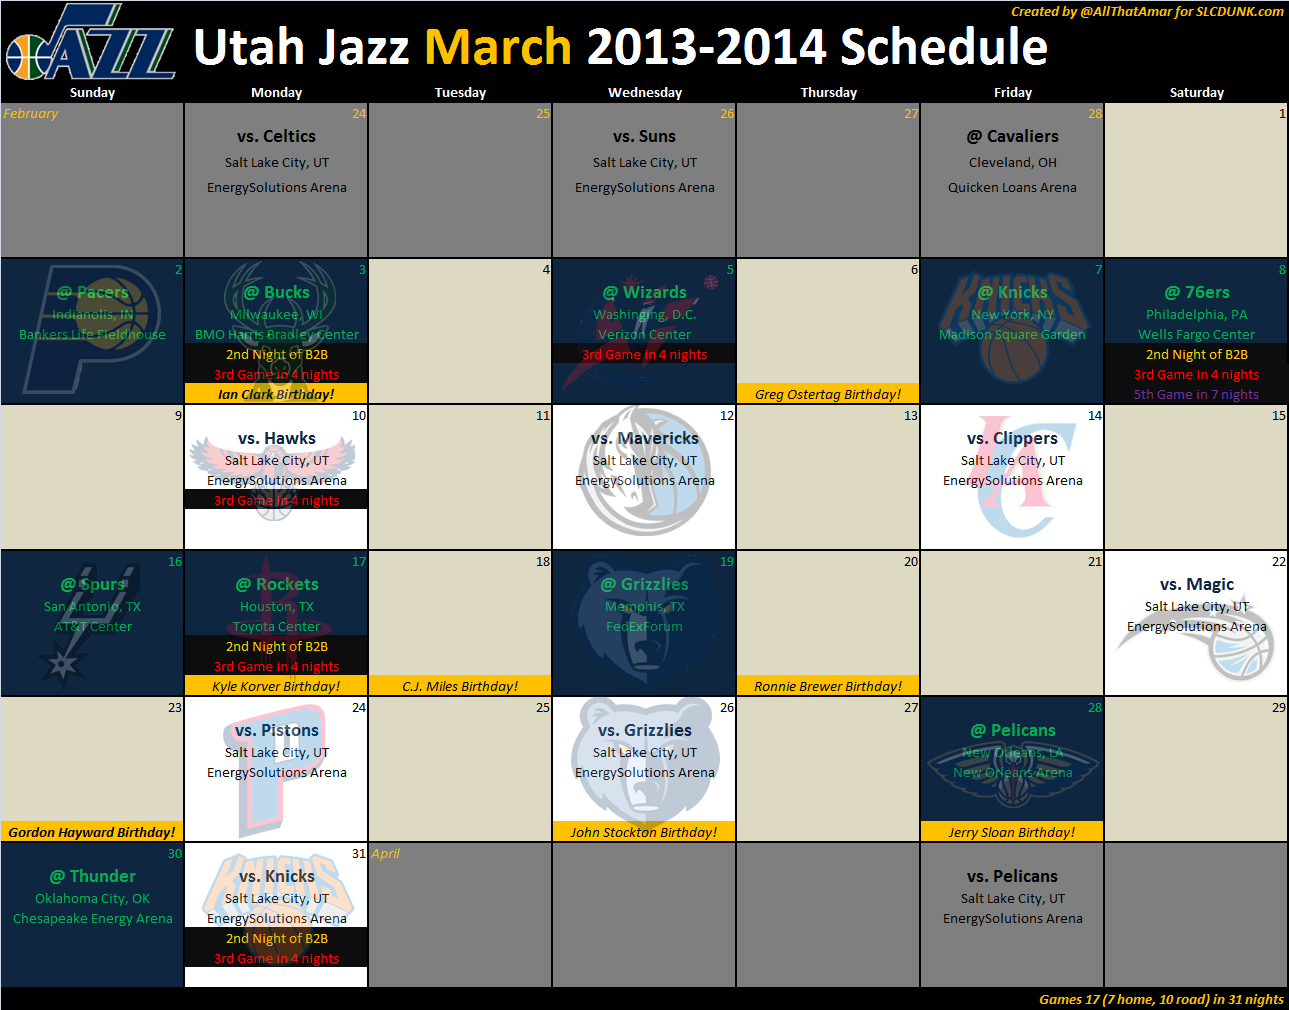 Jazz_2013_2014_schedule_-_06_mar